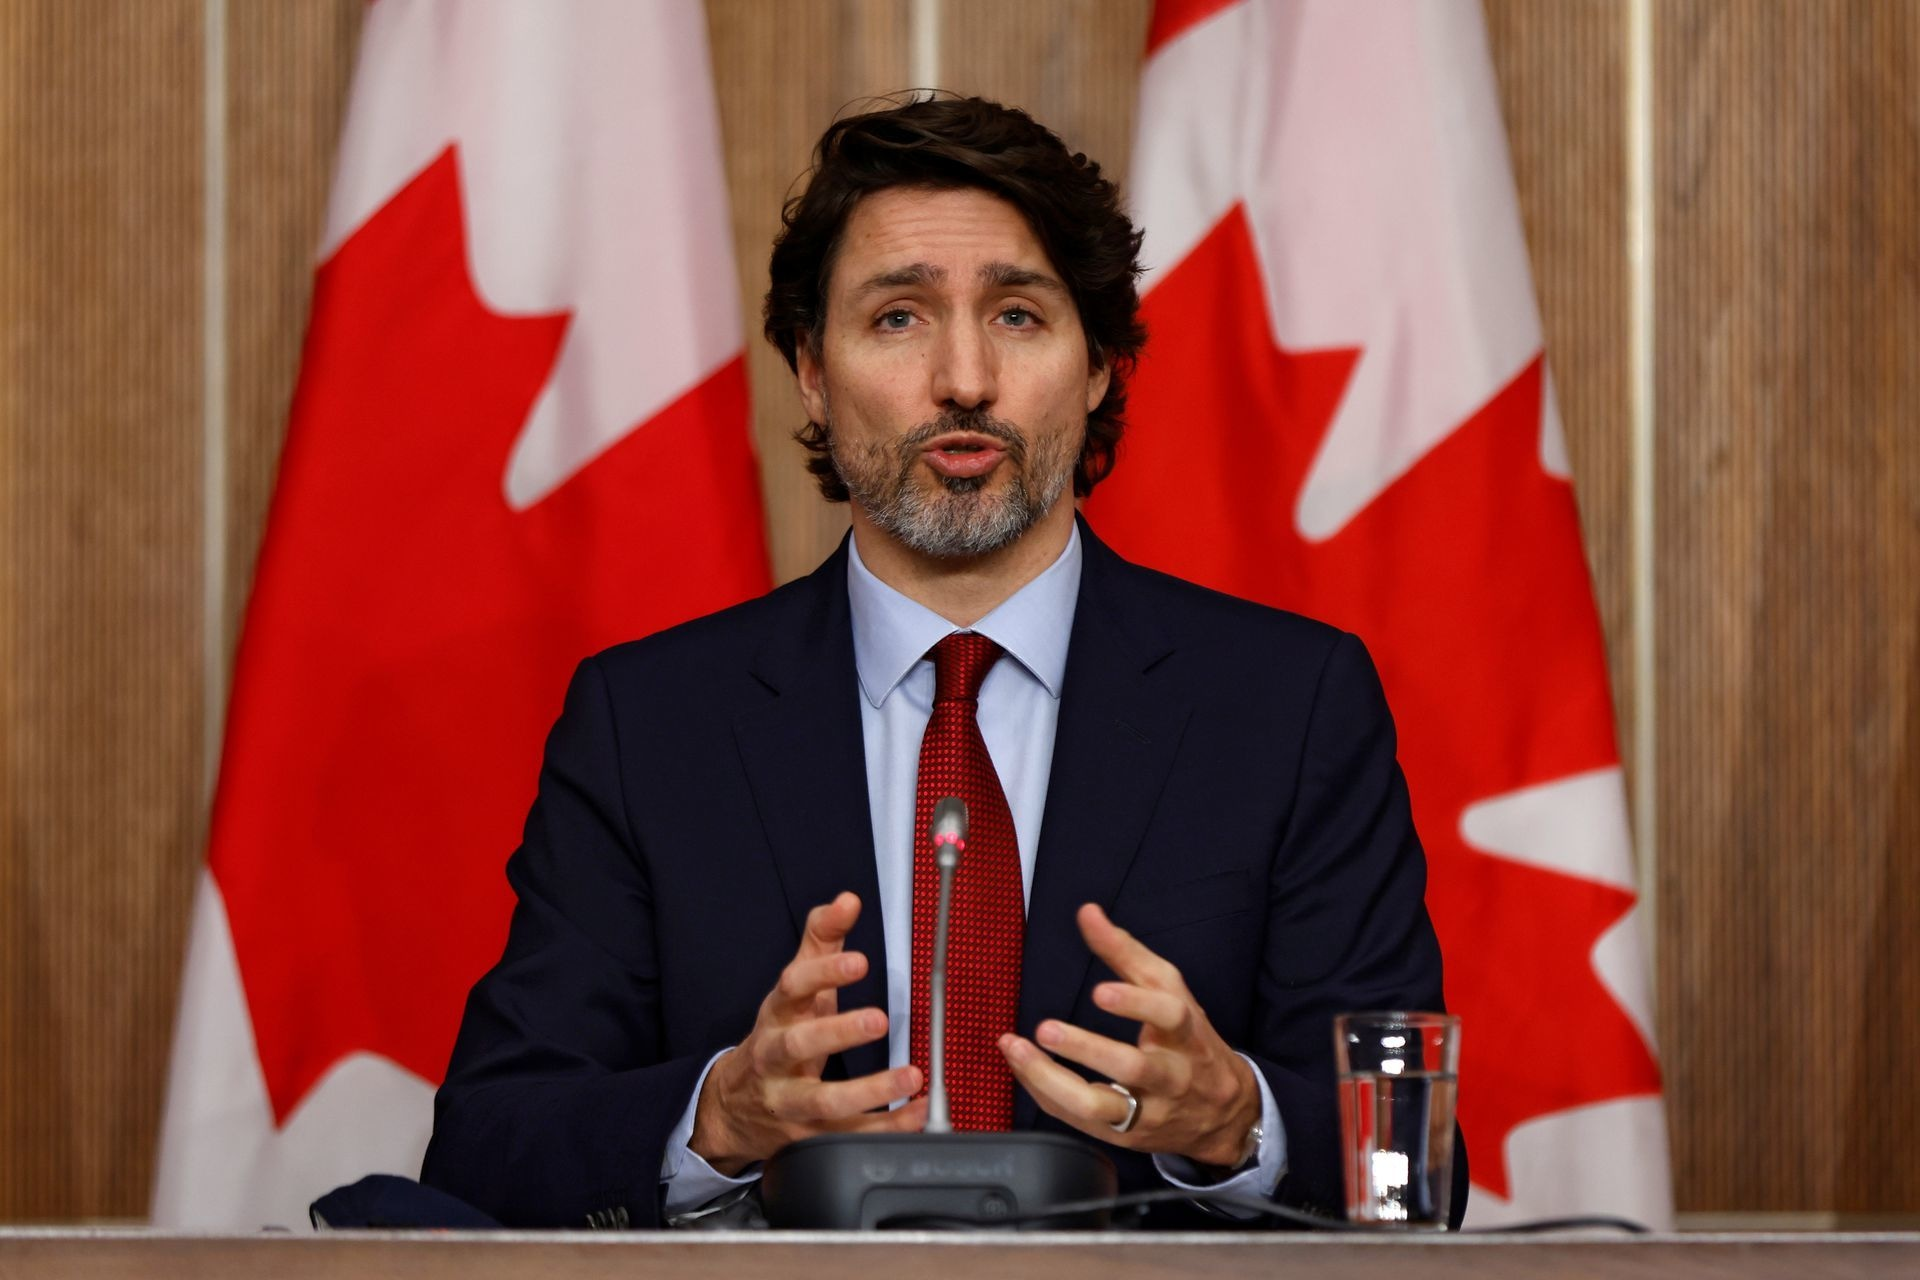 Justin Trudeau, 49, won a third term late on Monday. Reuteres